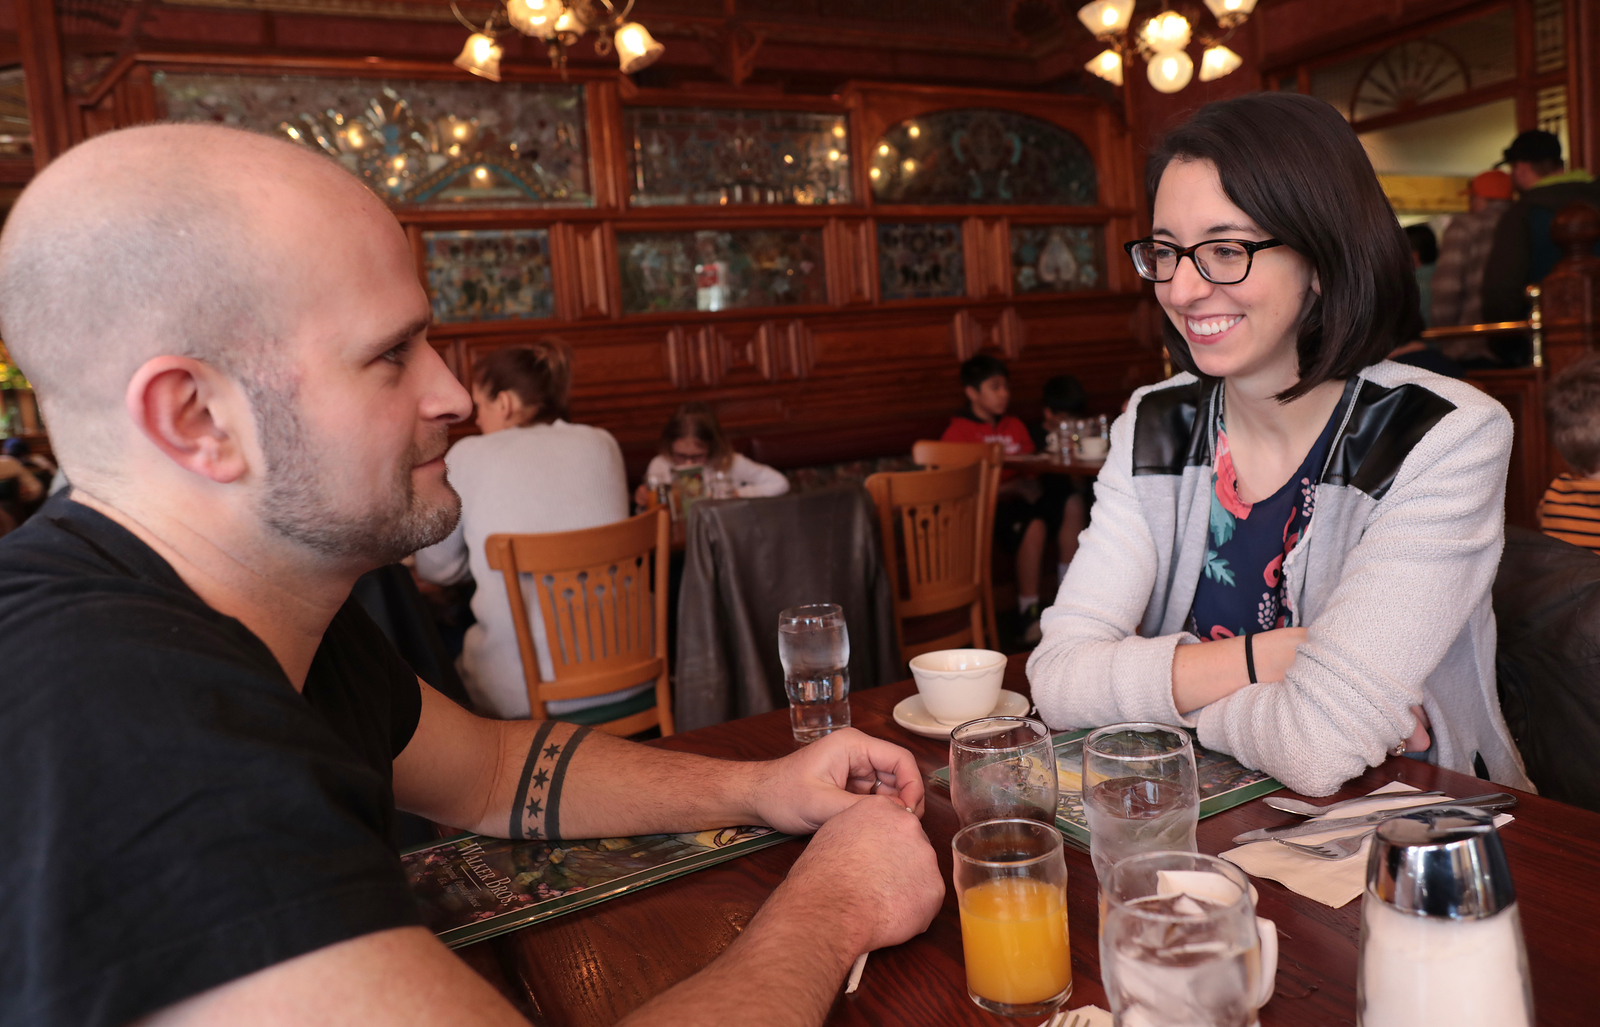 Justin Petersen and his wife, Giorie Mahn, make their first visit to Walker Brothers' Famous Pancake House in Wilmette.